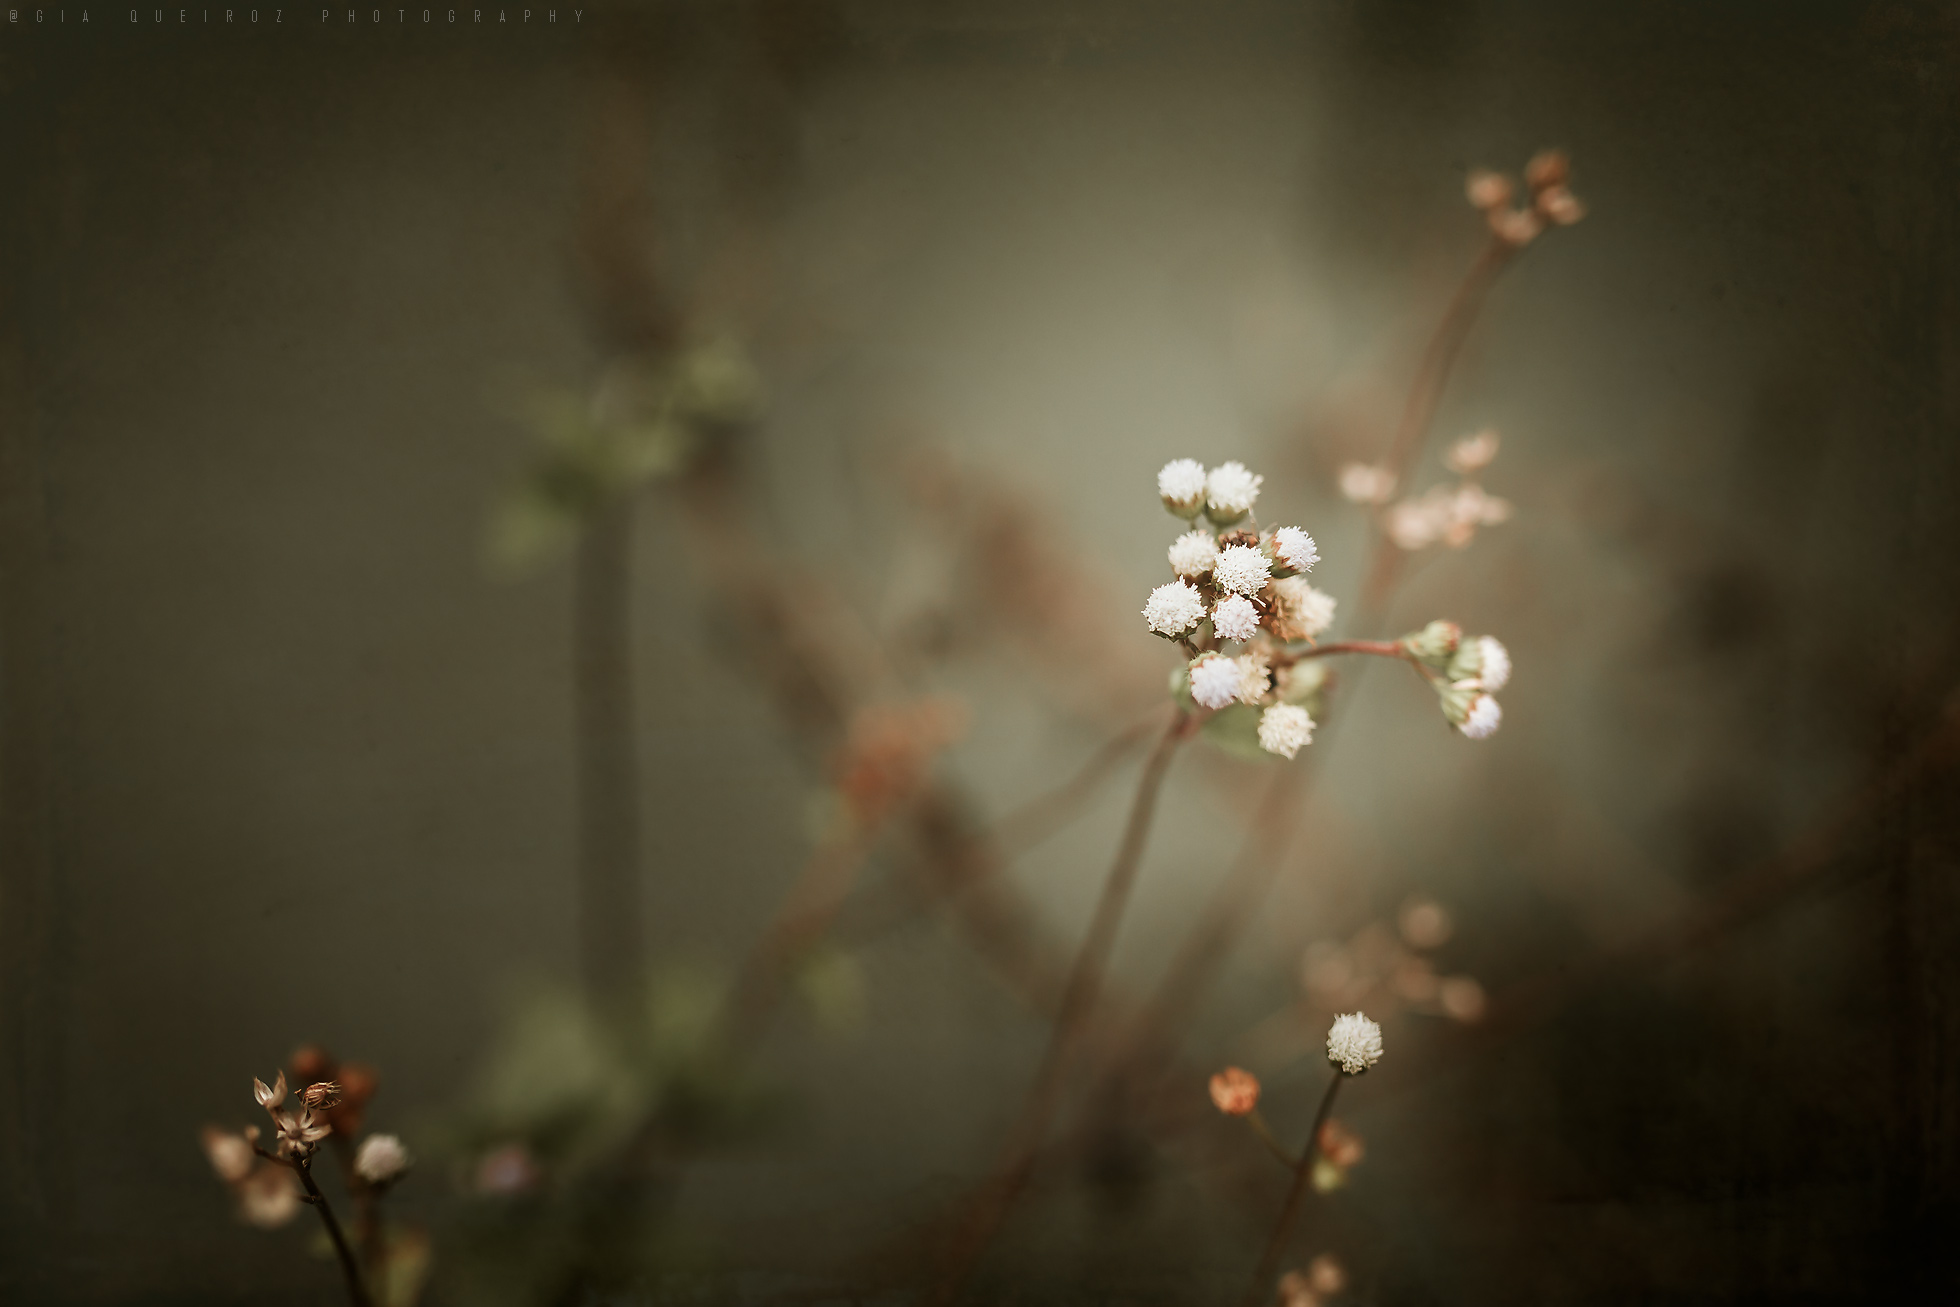 Small flowers in the garden by Gia Queiroz